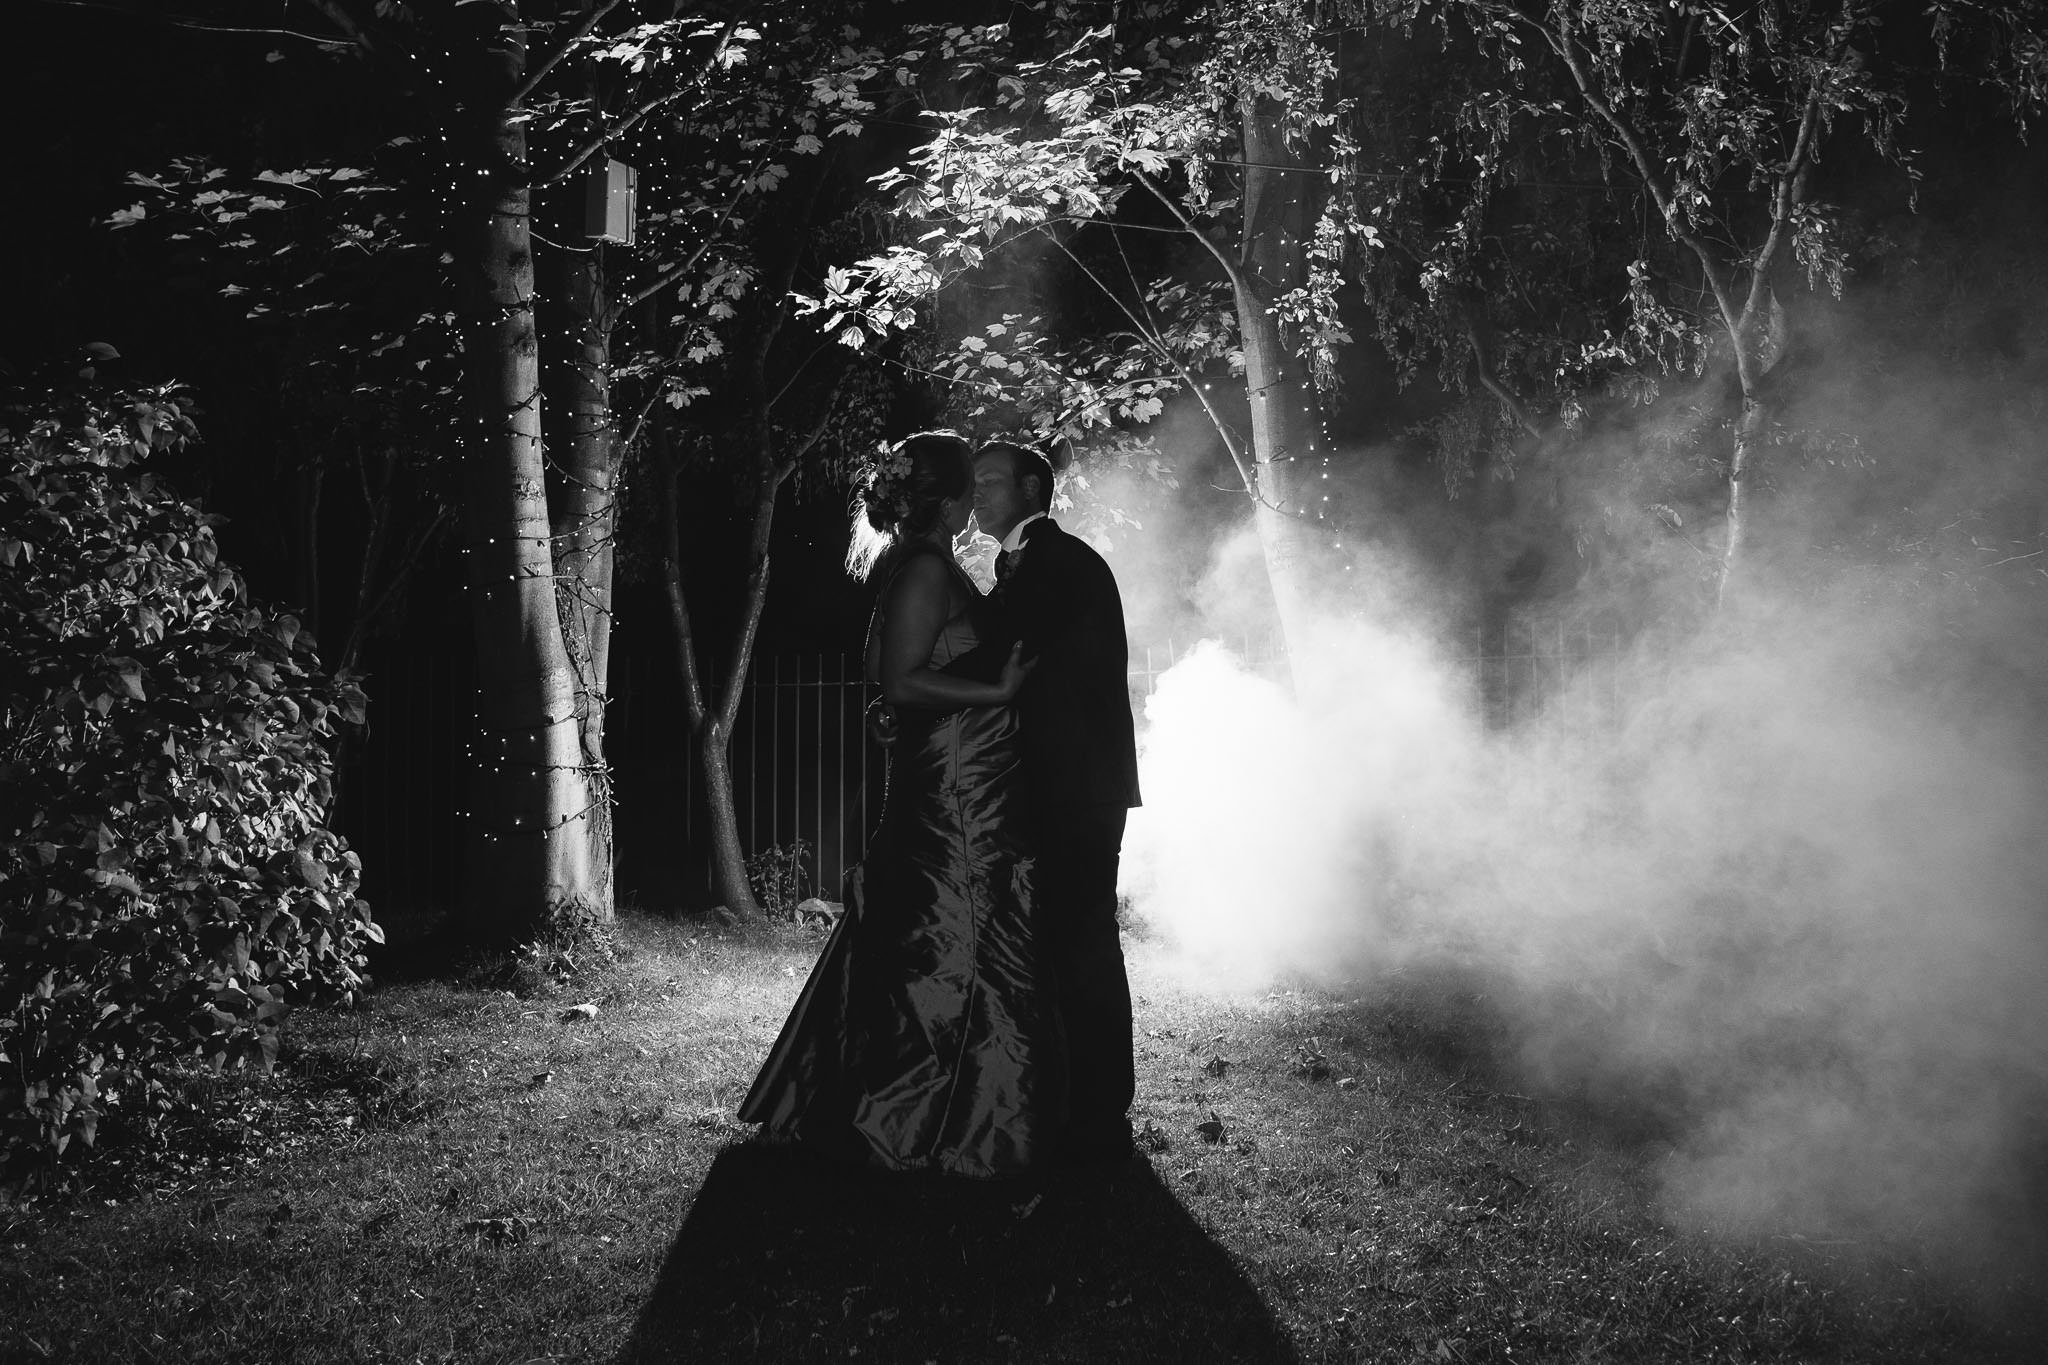 A black and white photo of the bride and groom lit by flash with smoke encircling them